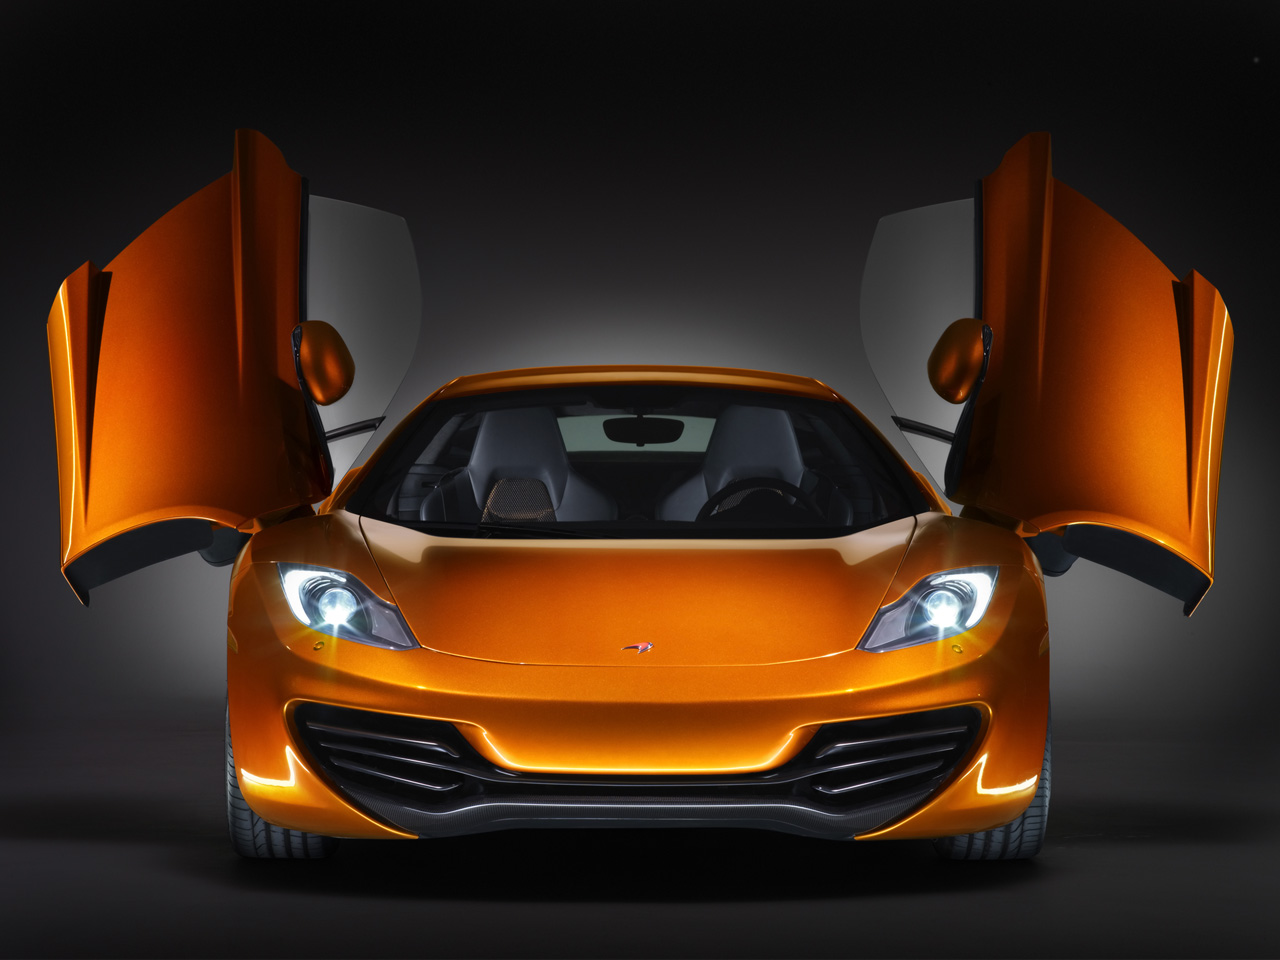 McLaren MP4 12C front view car models list price free image editor Wallpaper